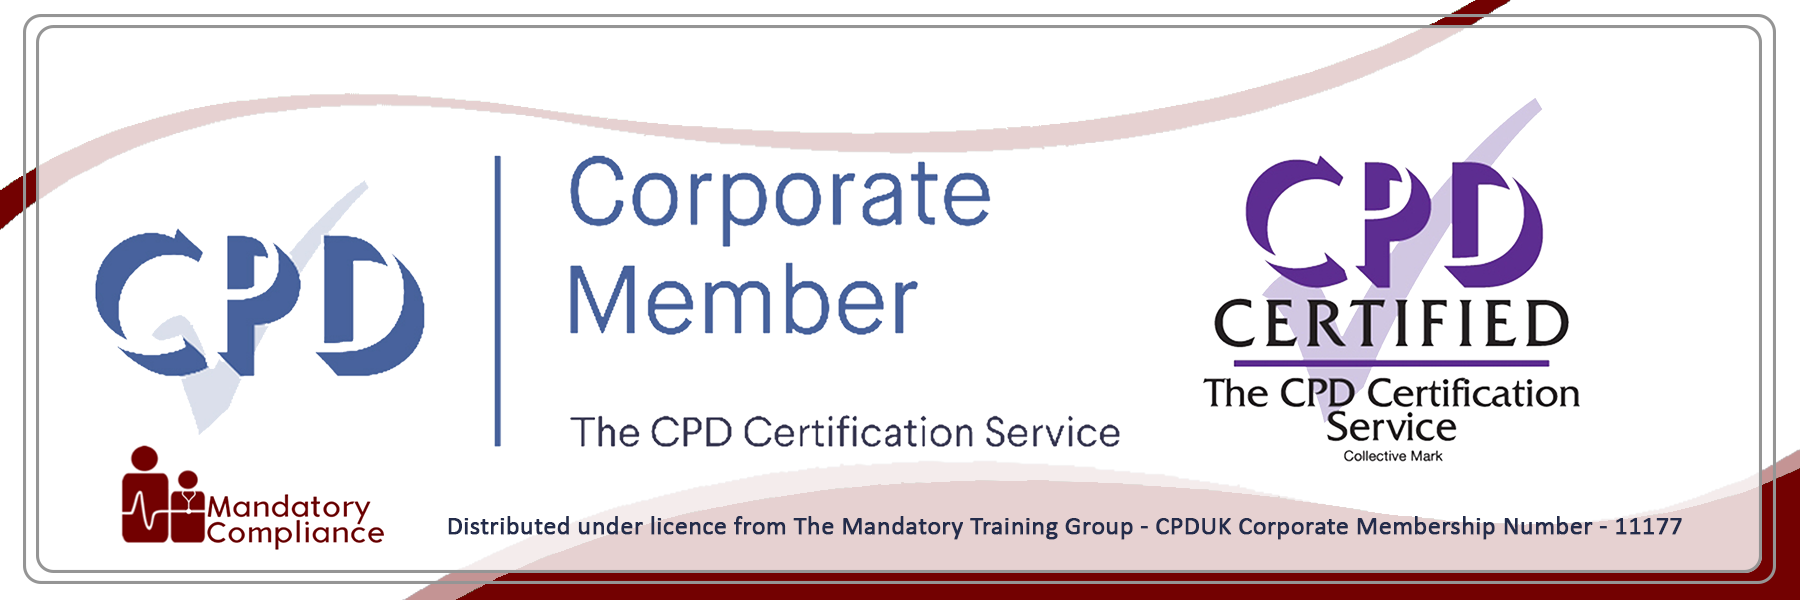 Non-Clinical Mandatory Training Courses - E-Learning Courses - Mandatory Compliance UK -